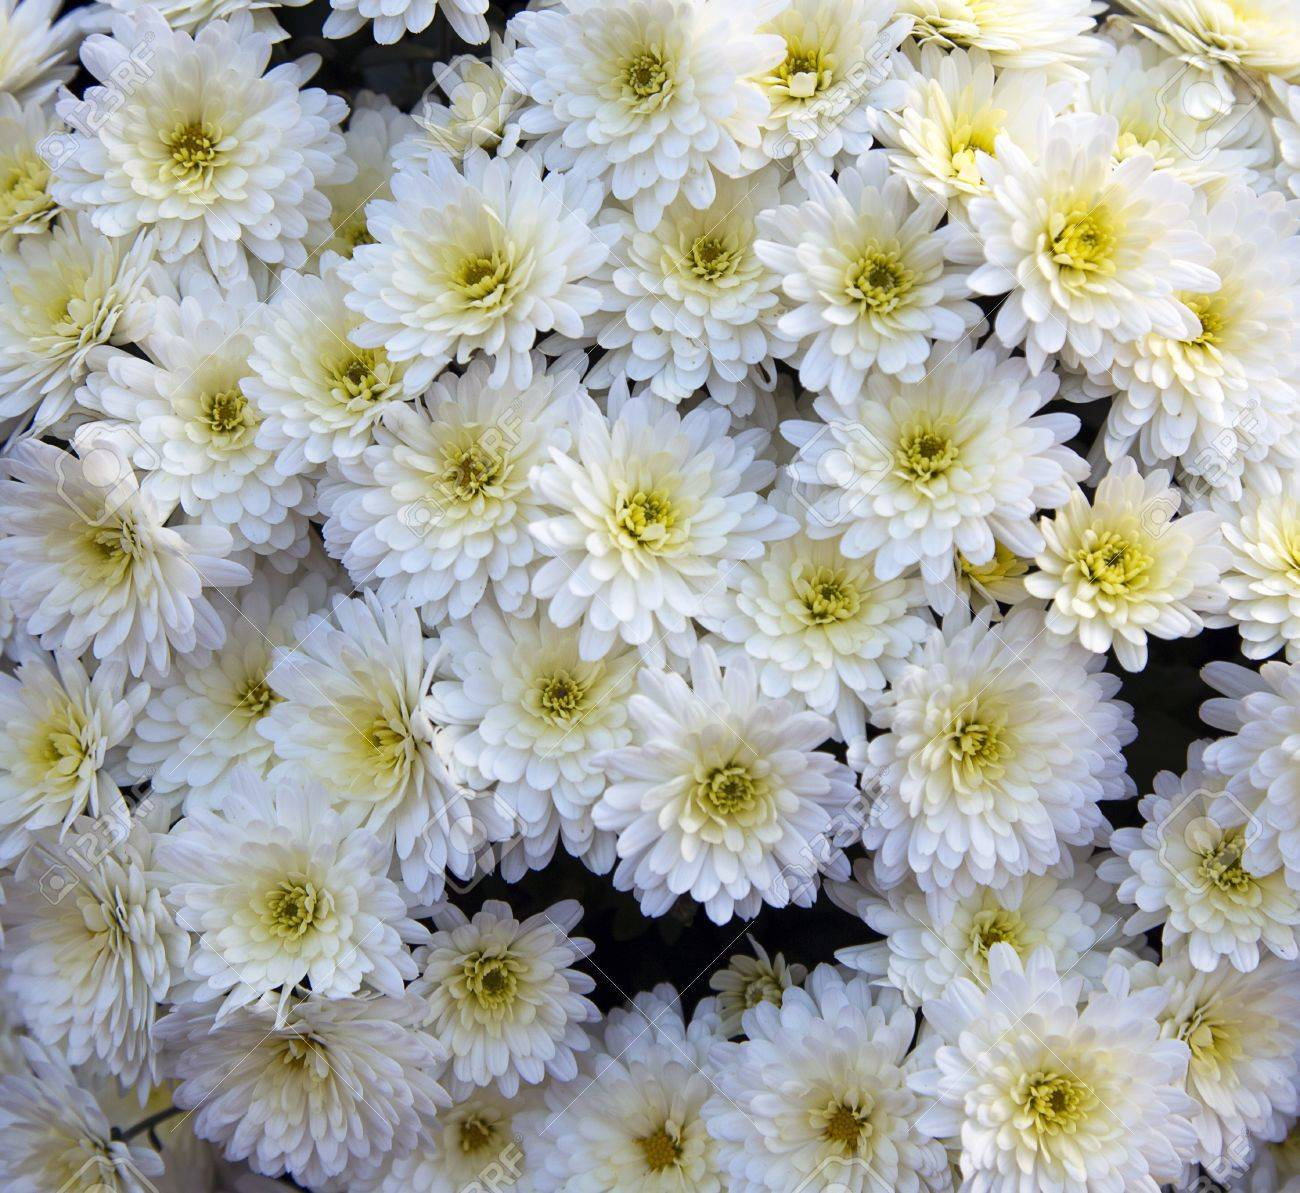 Wallpaper Of White Chrysanthemum Flowers Stock Photo Picture And